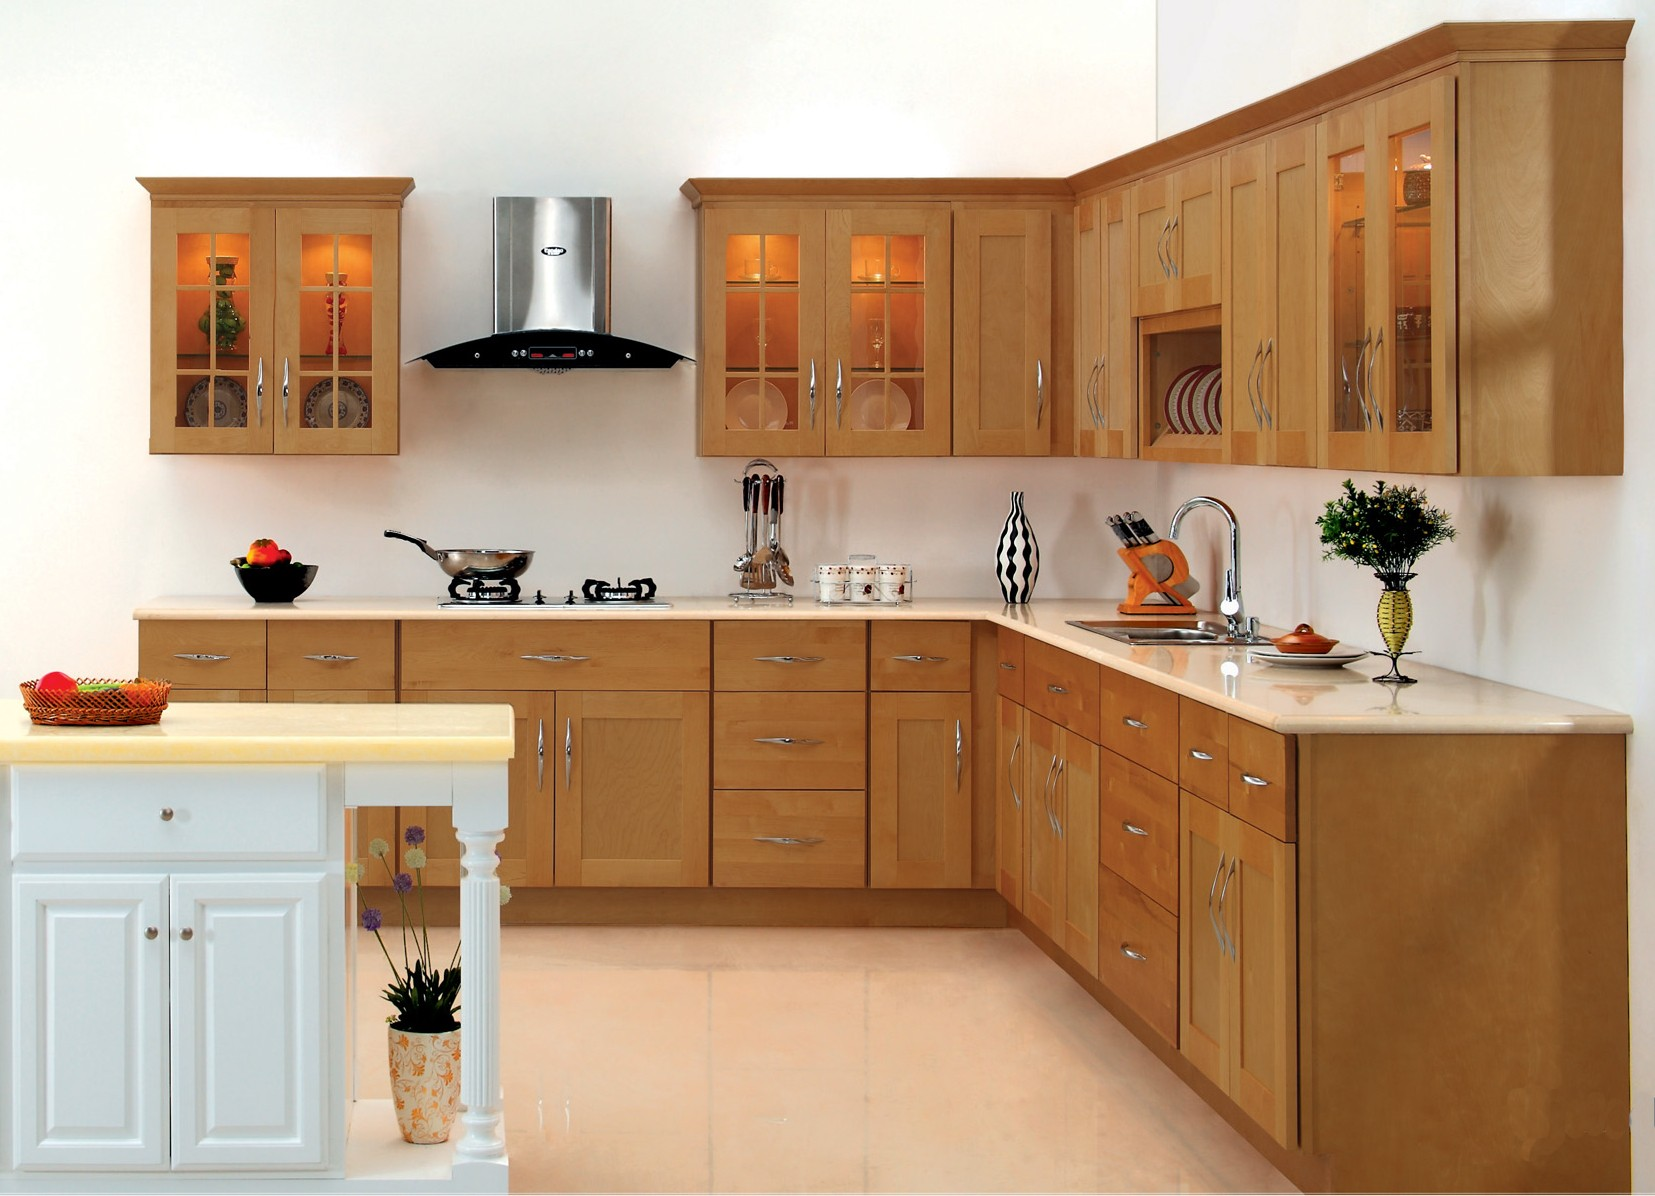 Kitchen Design India Images 10 Beautiful Modular Kitchen Ideas